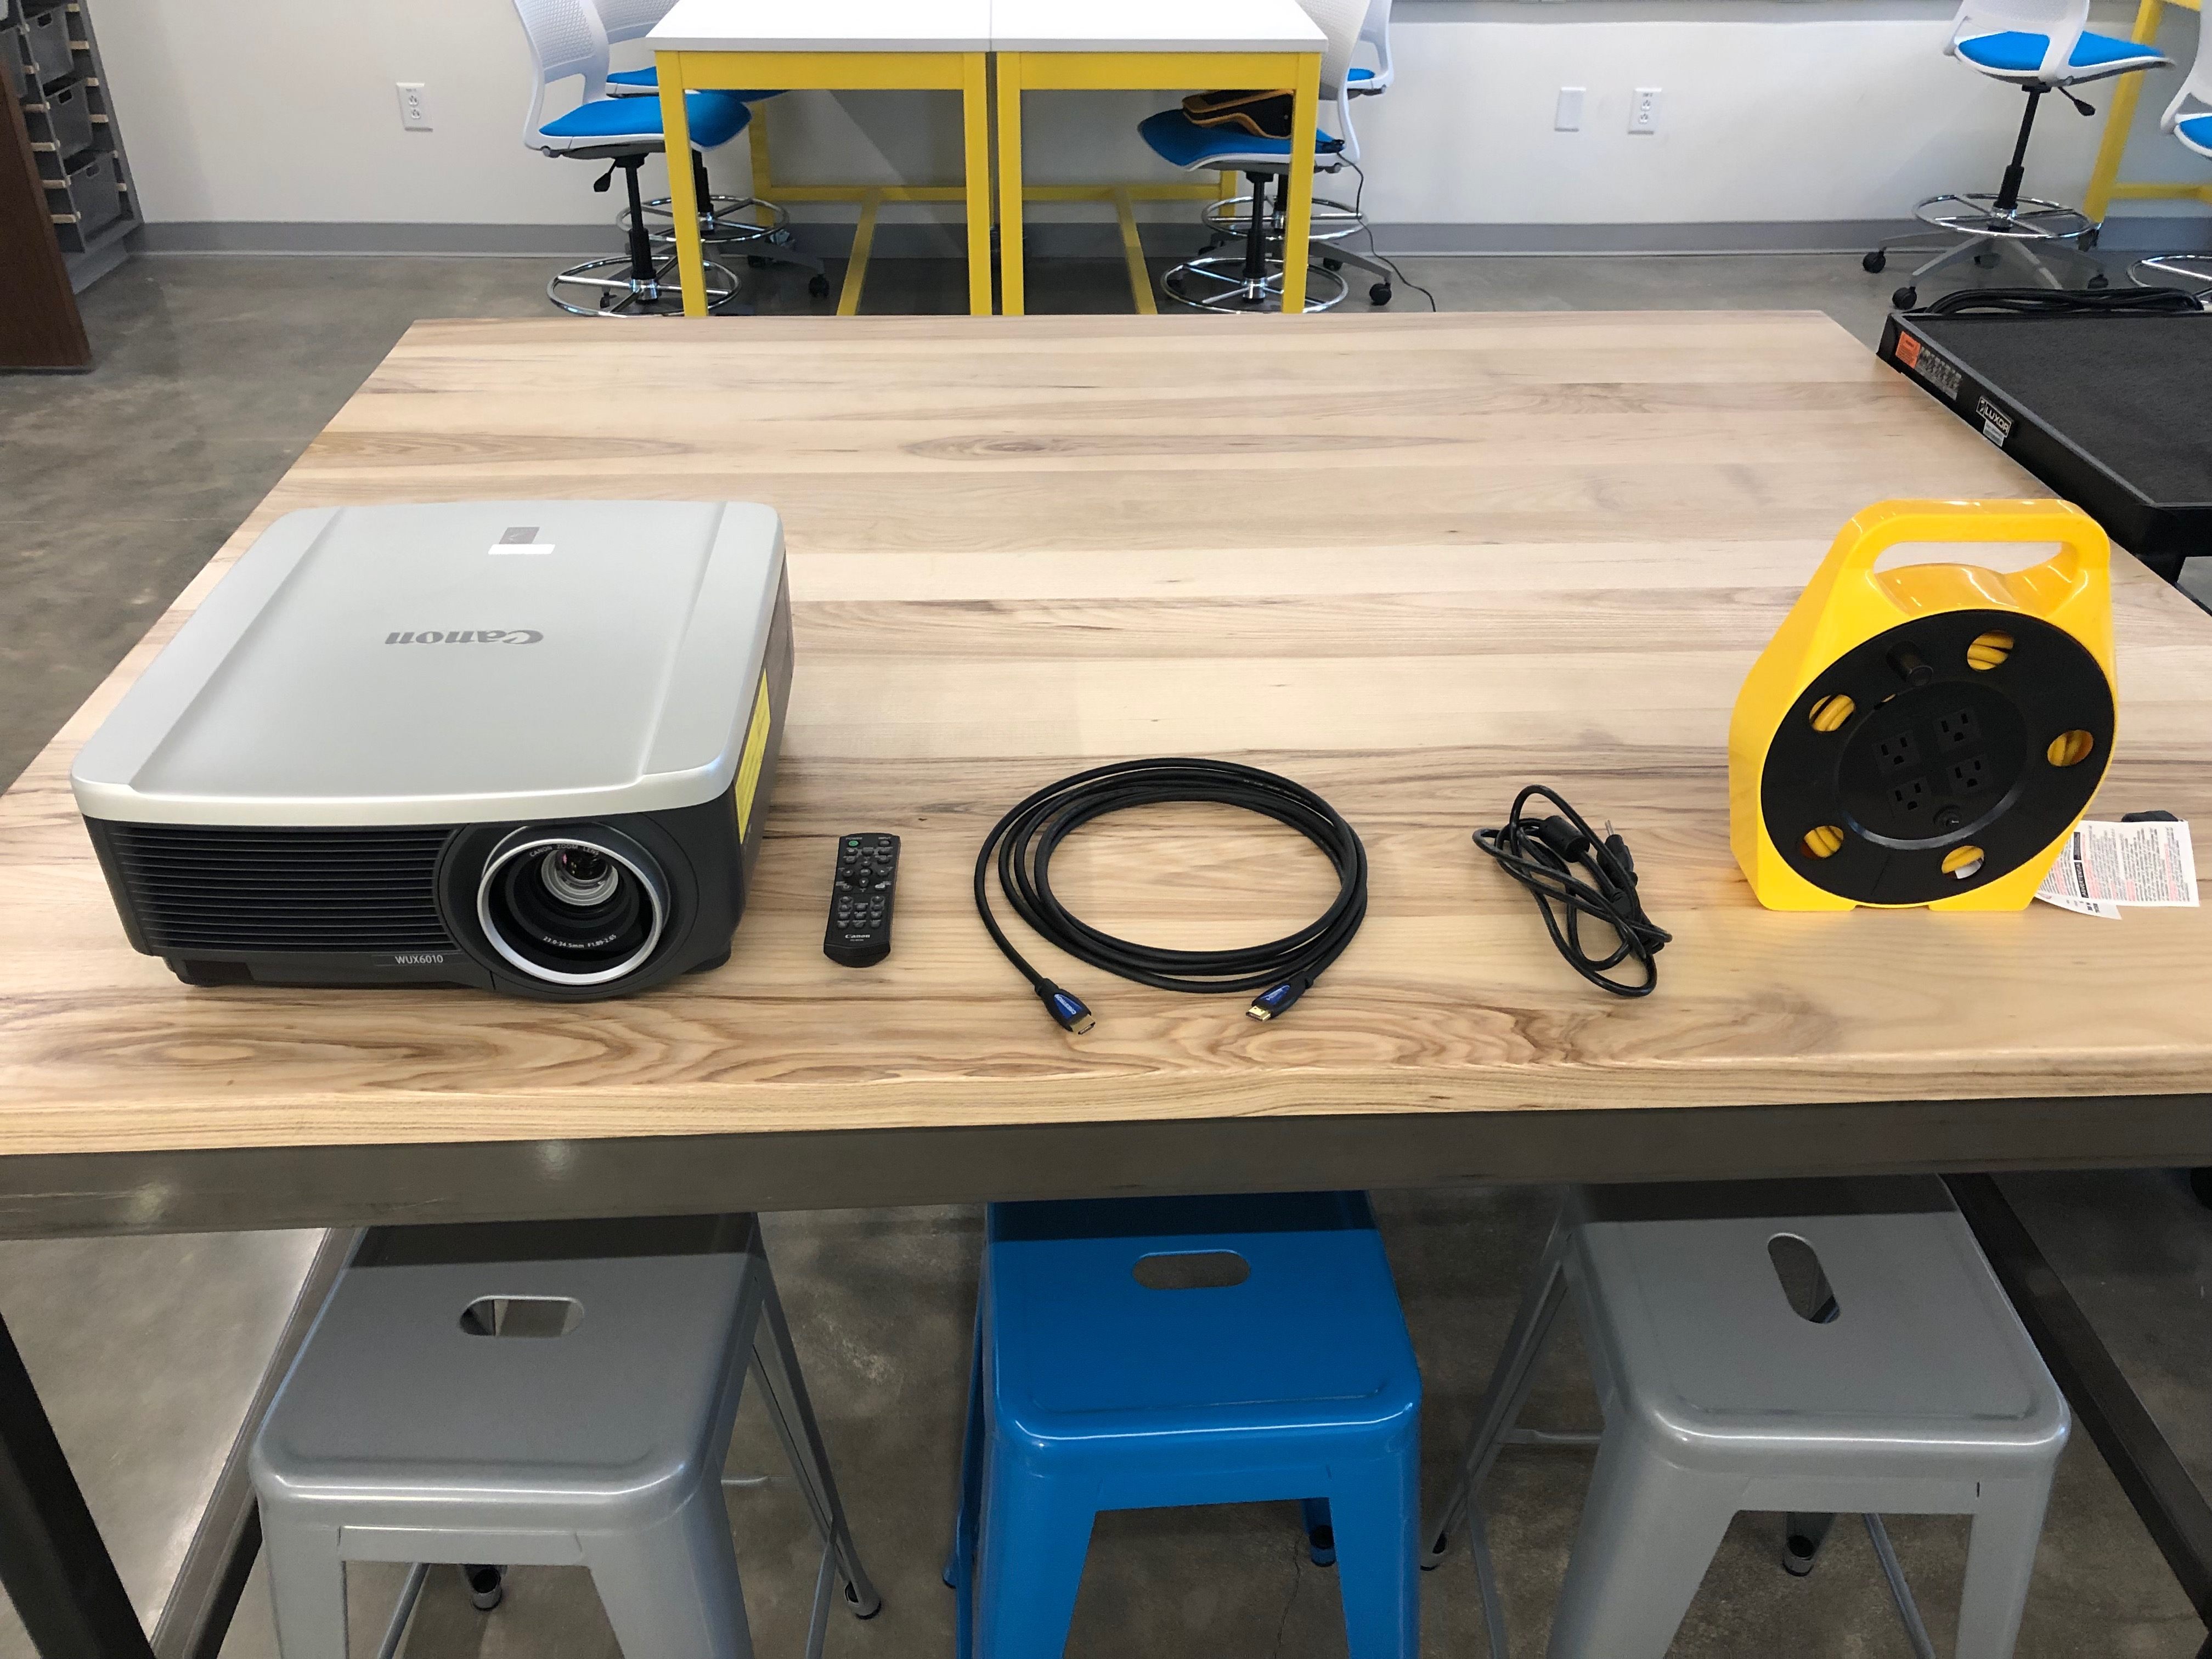 A photo of the items that are stored in the storage cabinet. (A Canon projector, Canon remote control, 12ft HDMI cable, projector power cable, power extension reel)